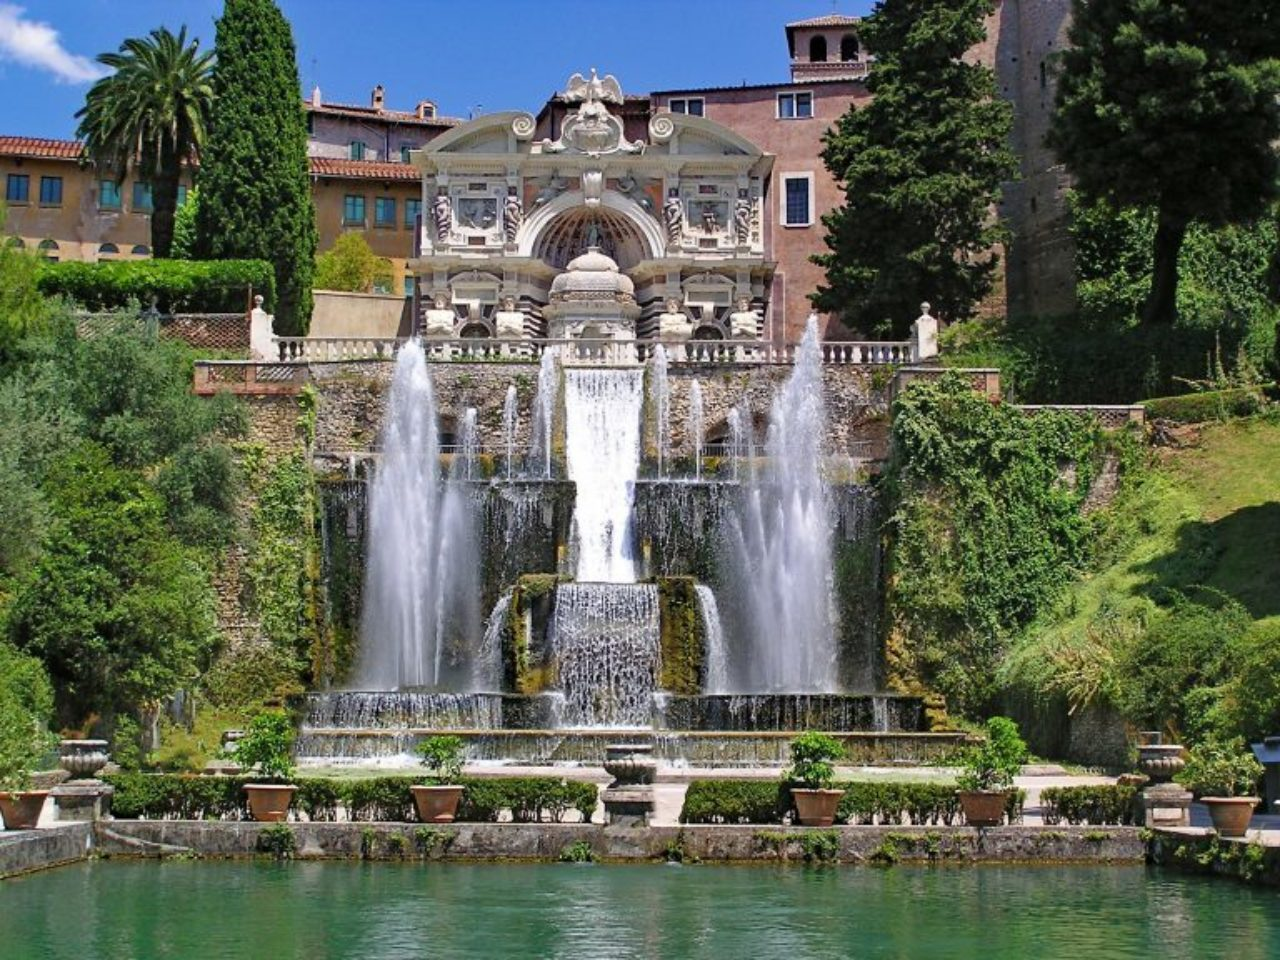 Fountain of Neptune, Villa d'Este